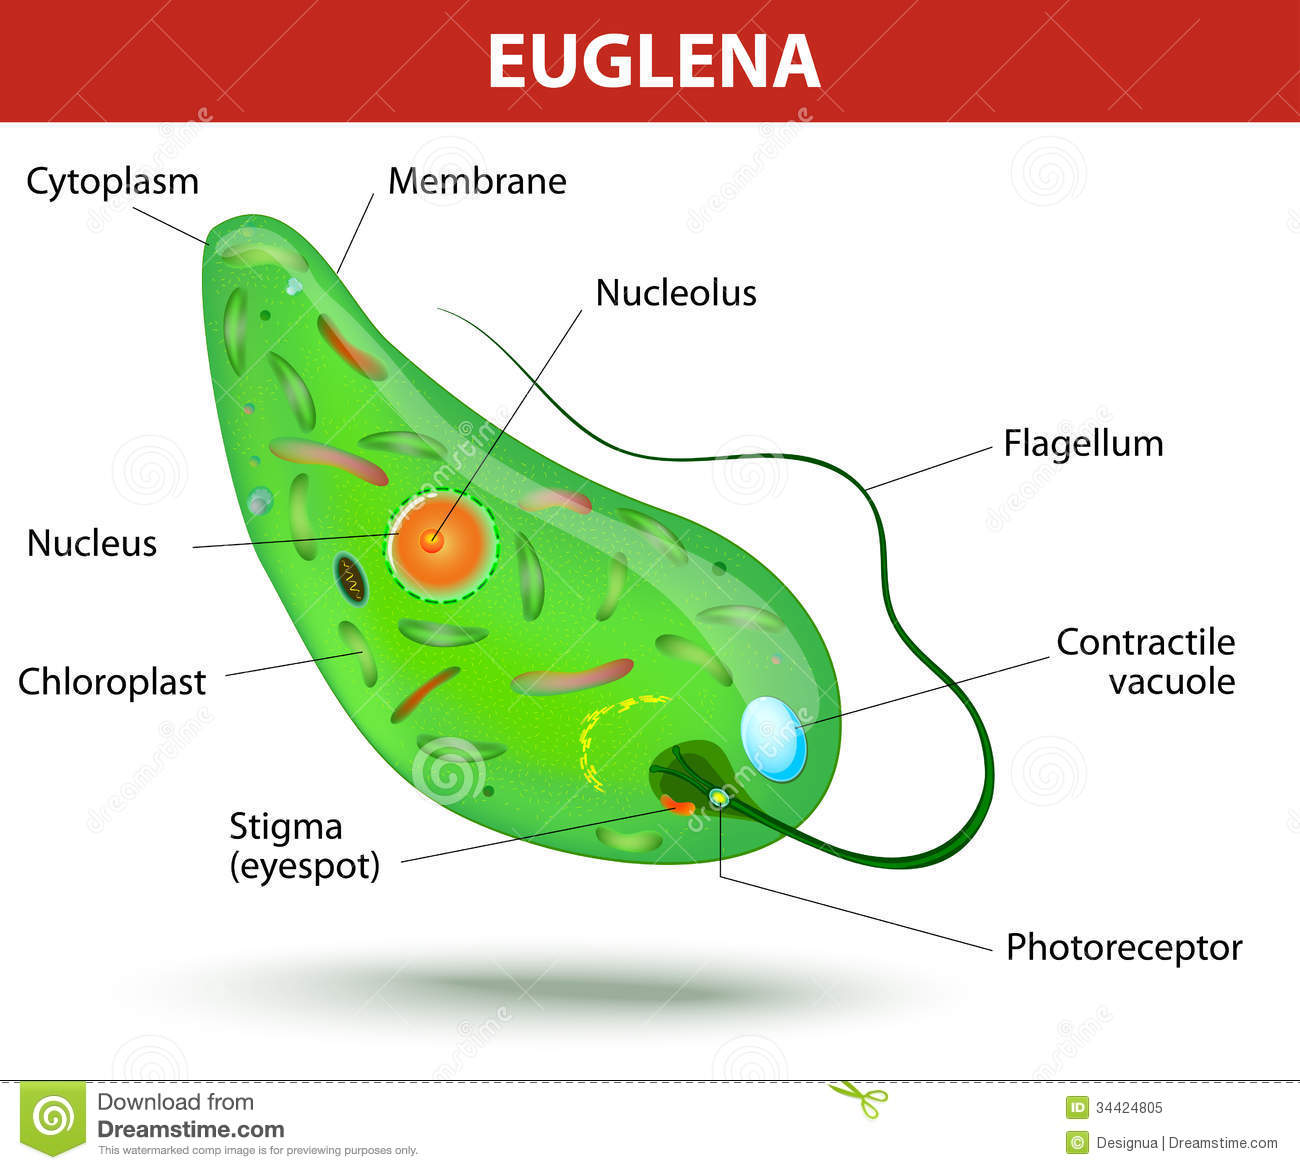 Anatomy of a euglena. Euglena freshwater protozoan. It is composed of ...